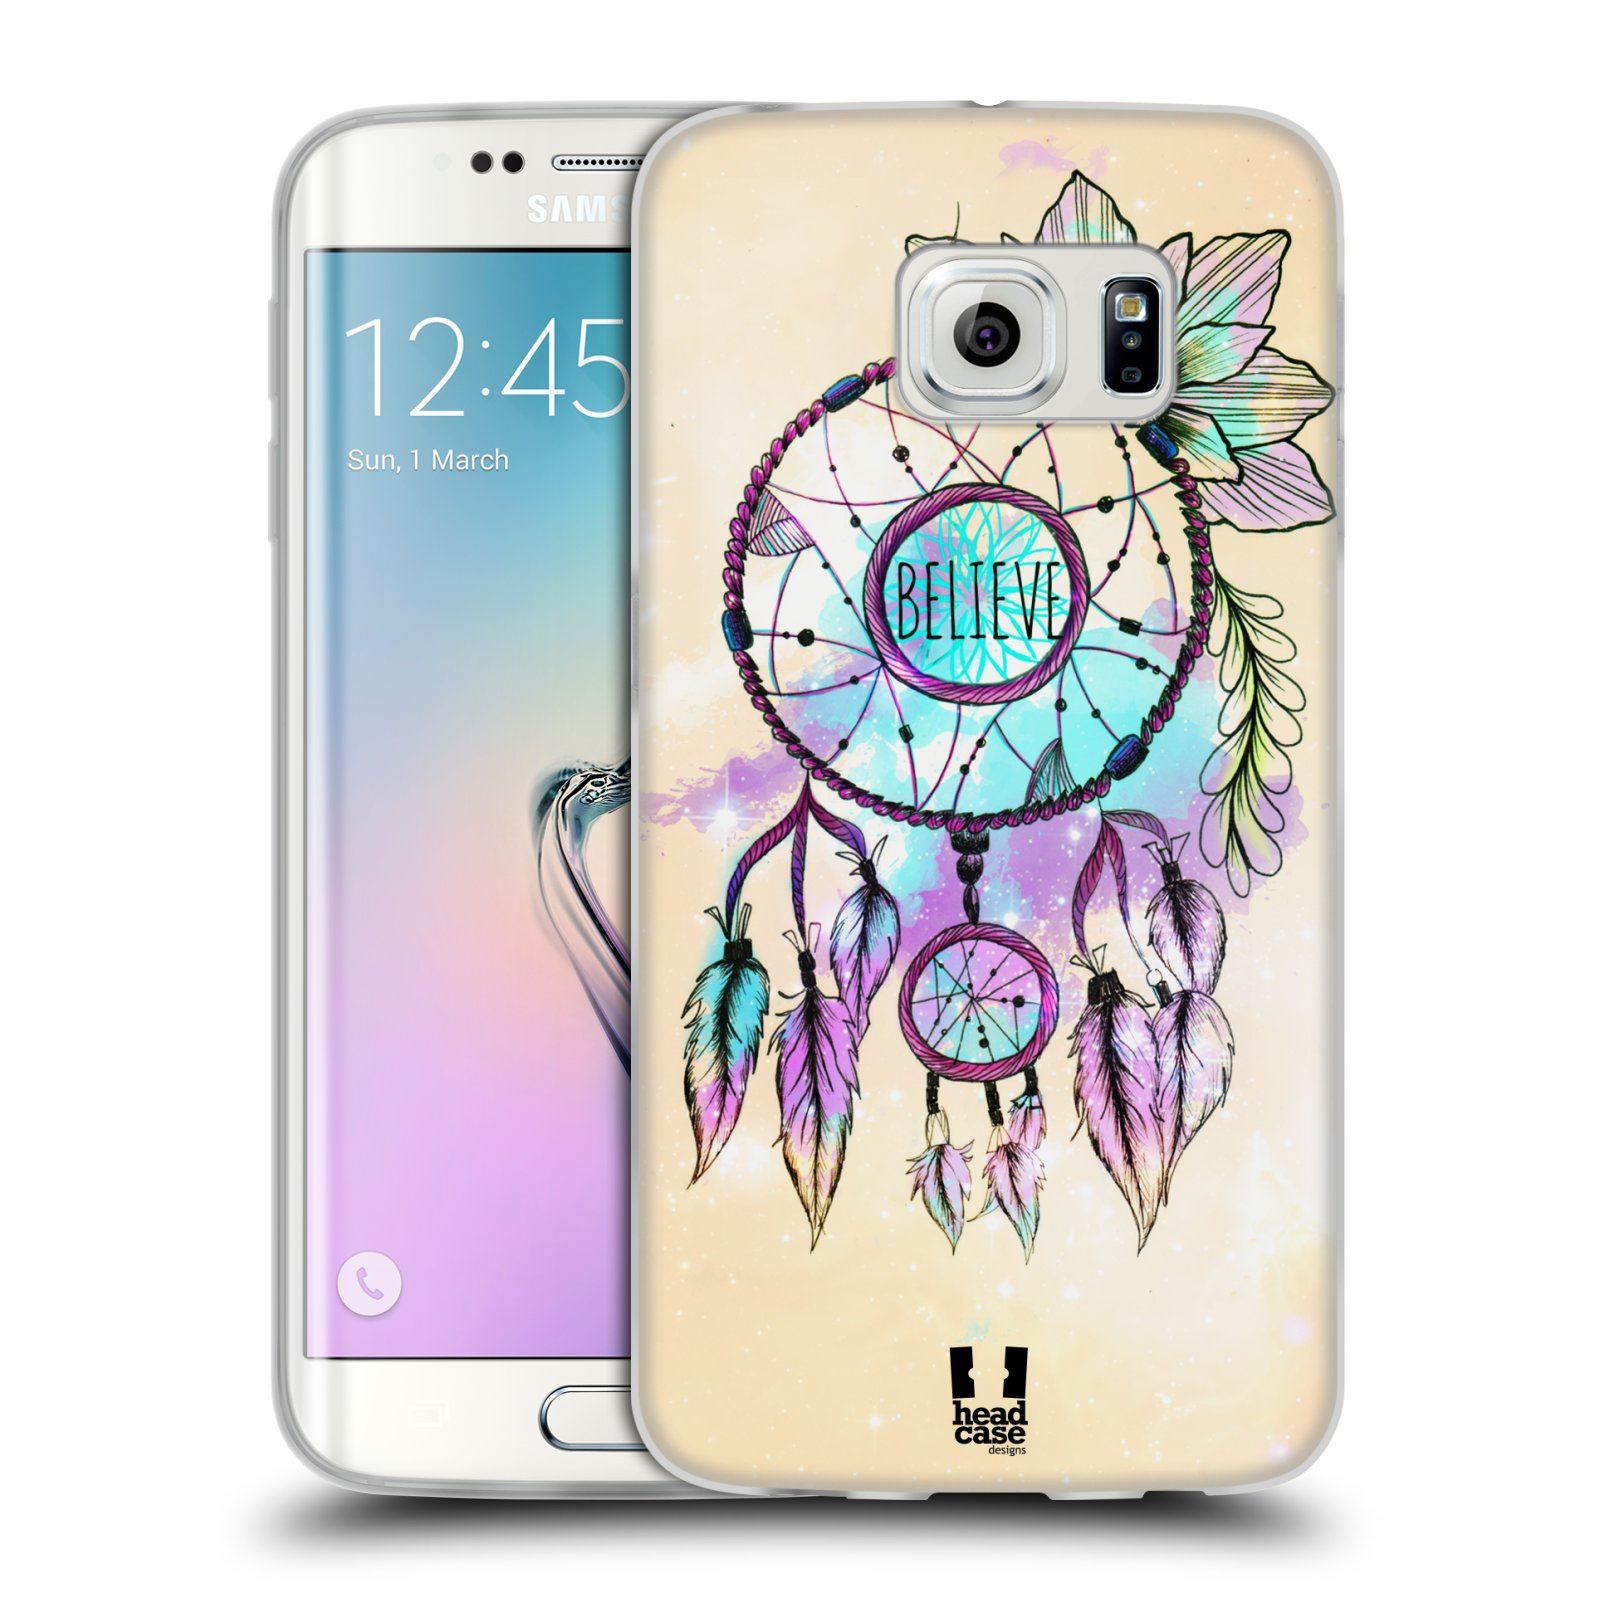 Silikonové pouzdro na mobil Samsung Galaxy S6 Edge HEAD CASE MIX BELIEVE